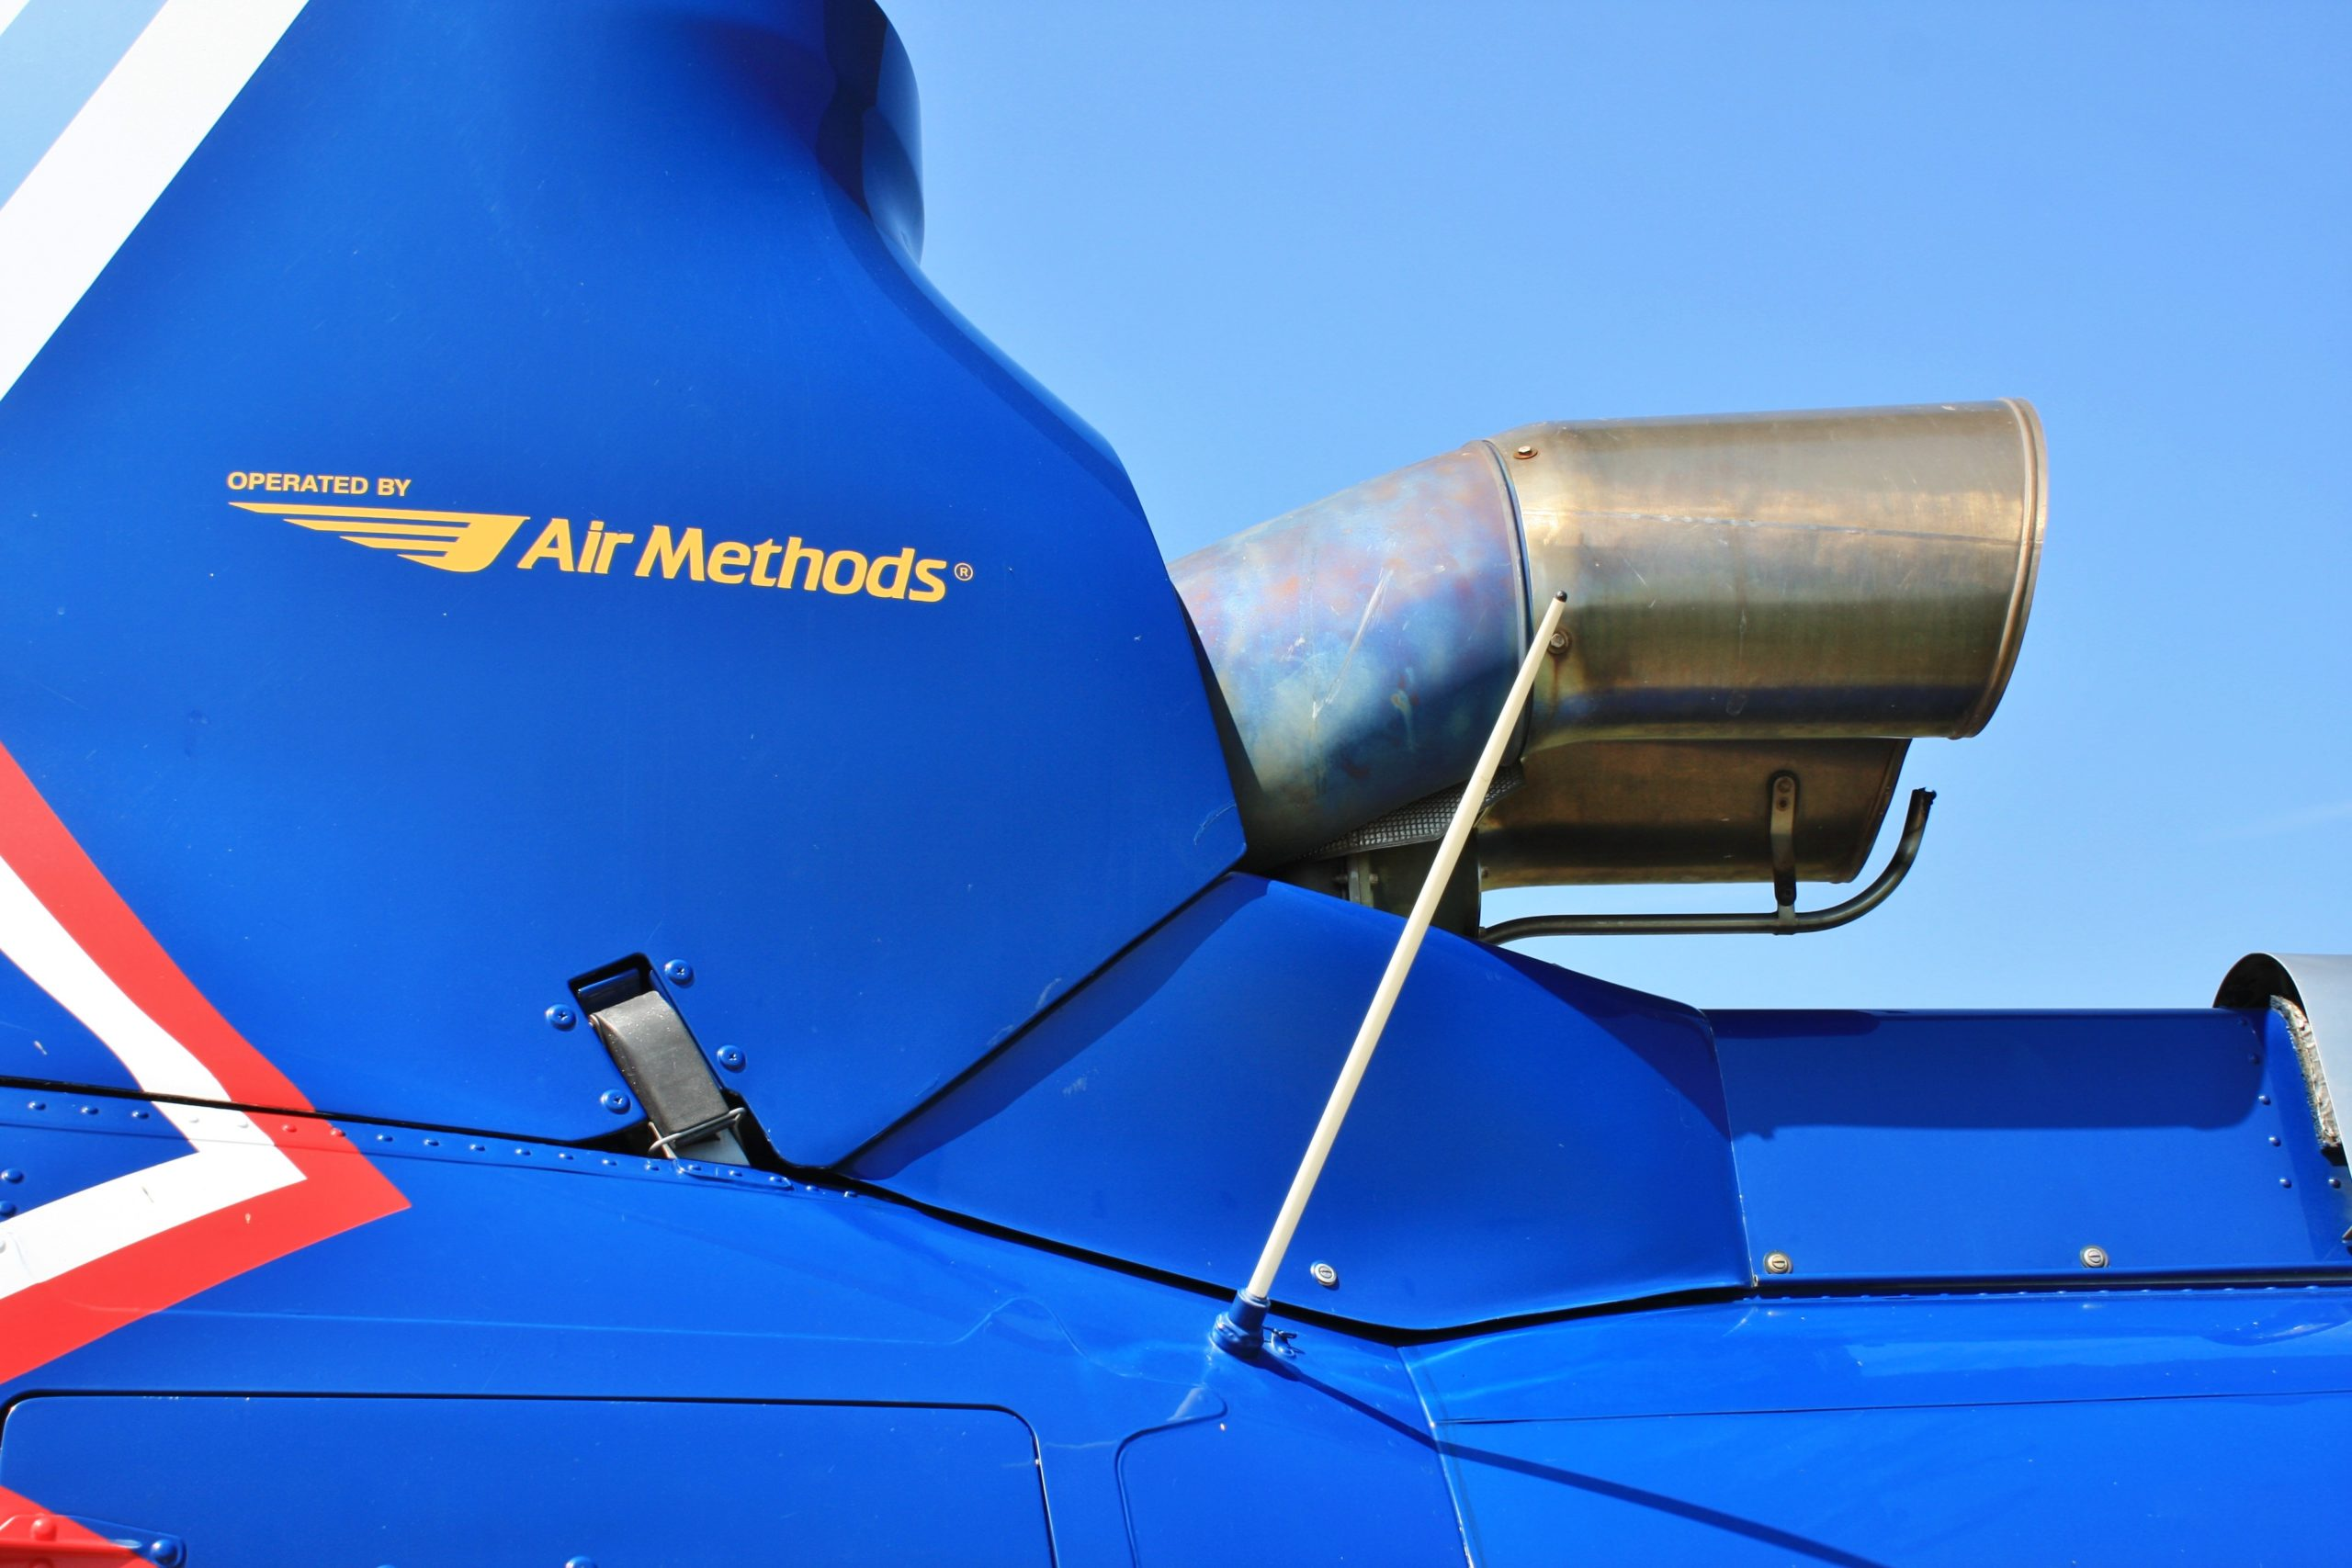 Air Methods' logo on aircraft.